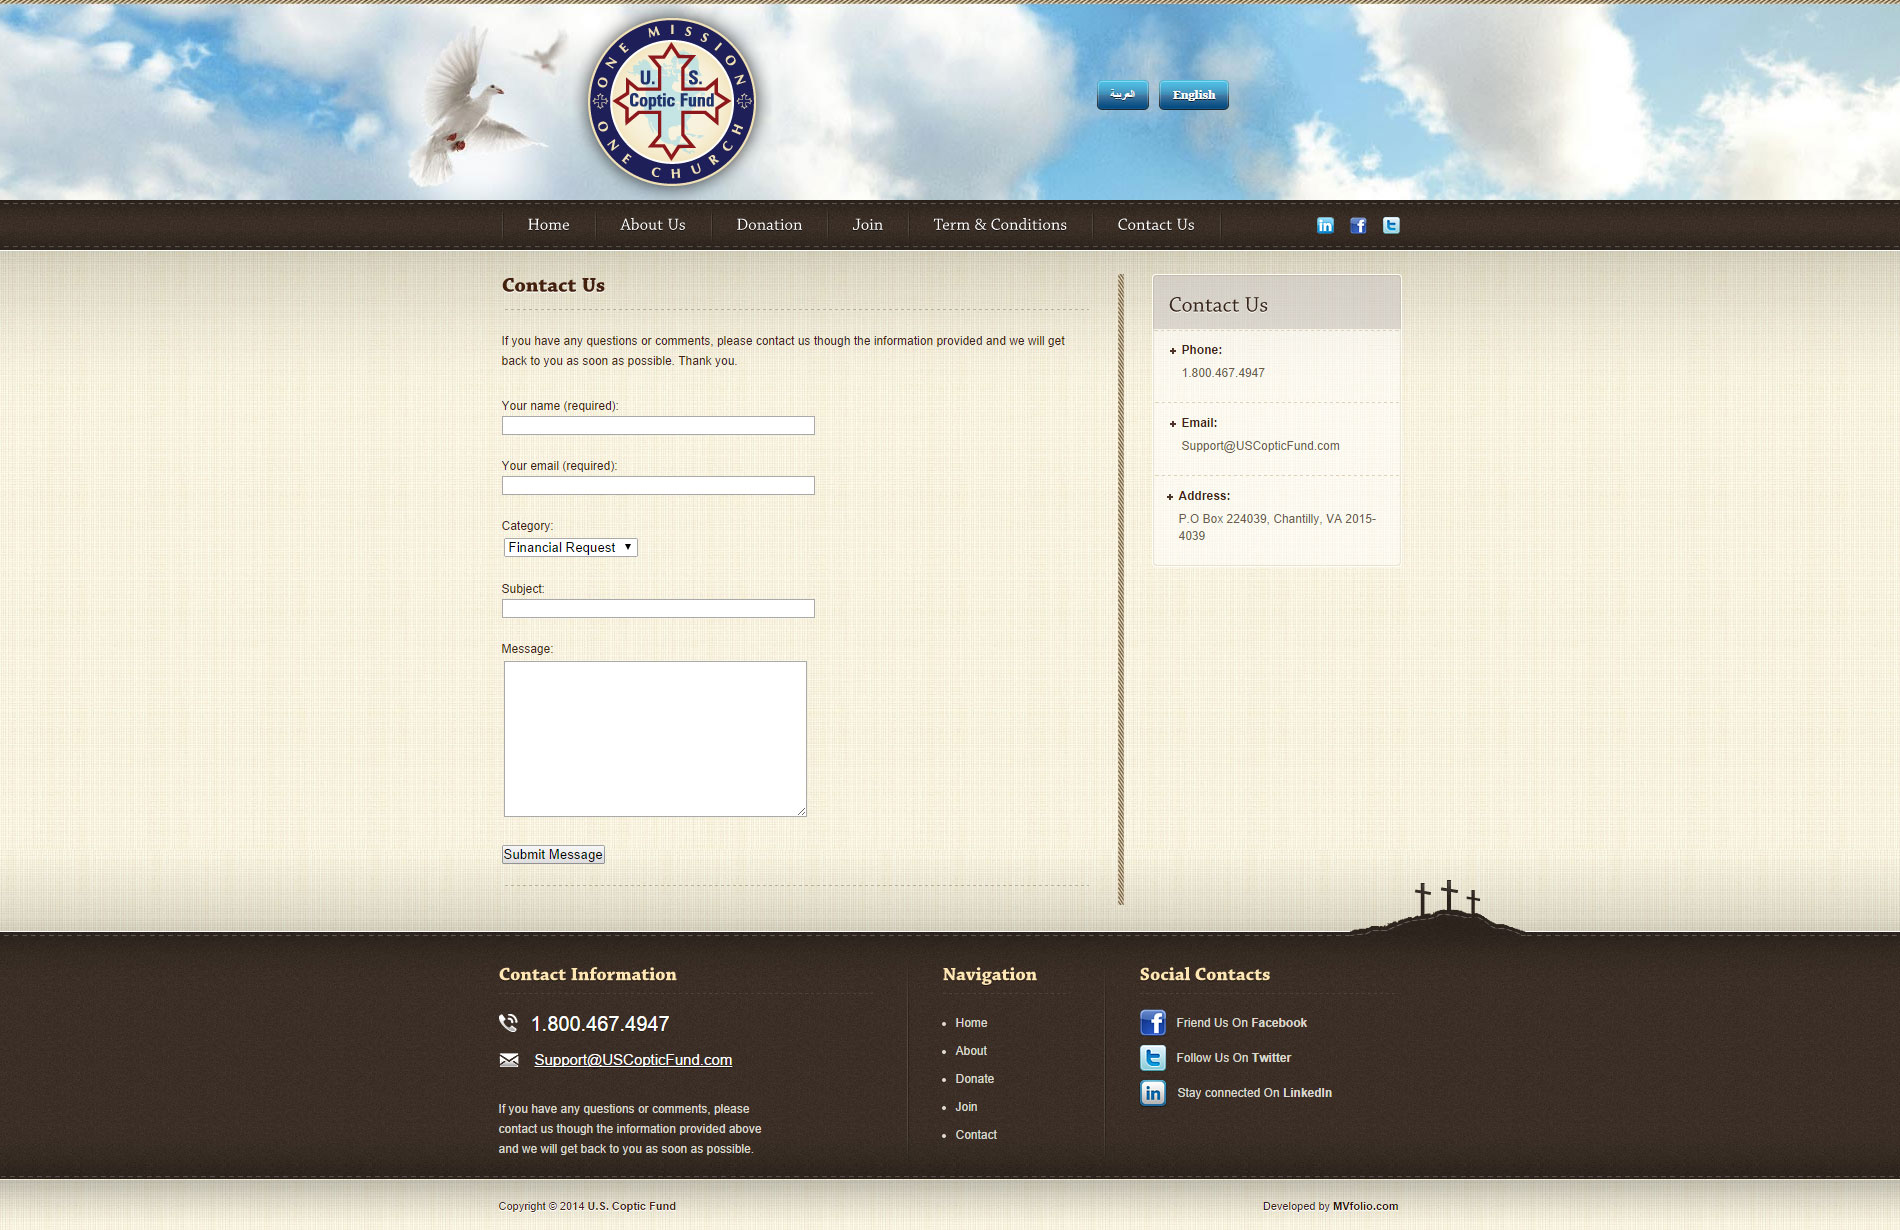 US Coptic Fund Contact Page